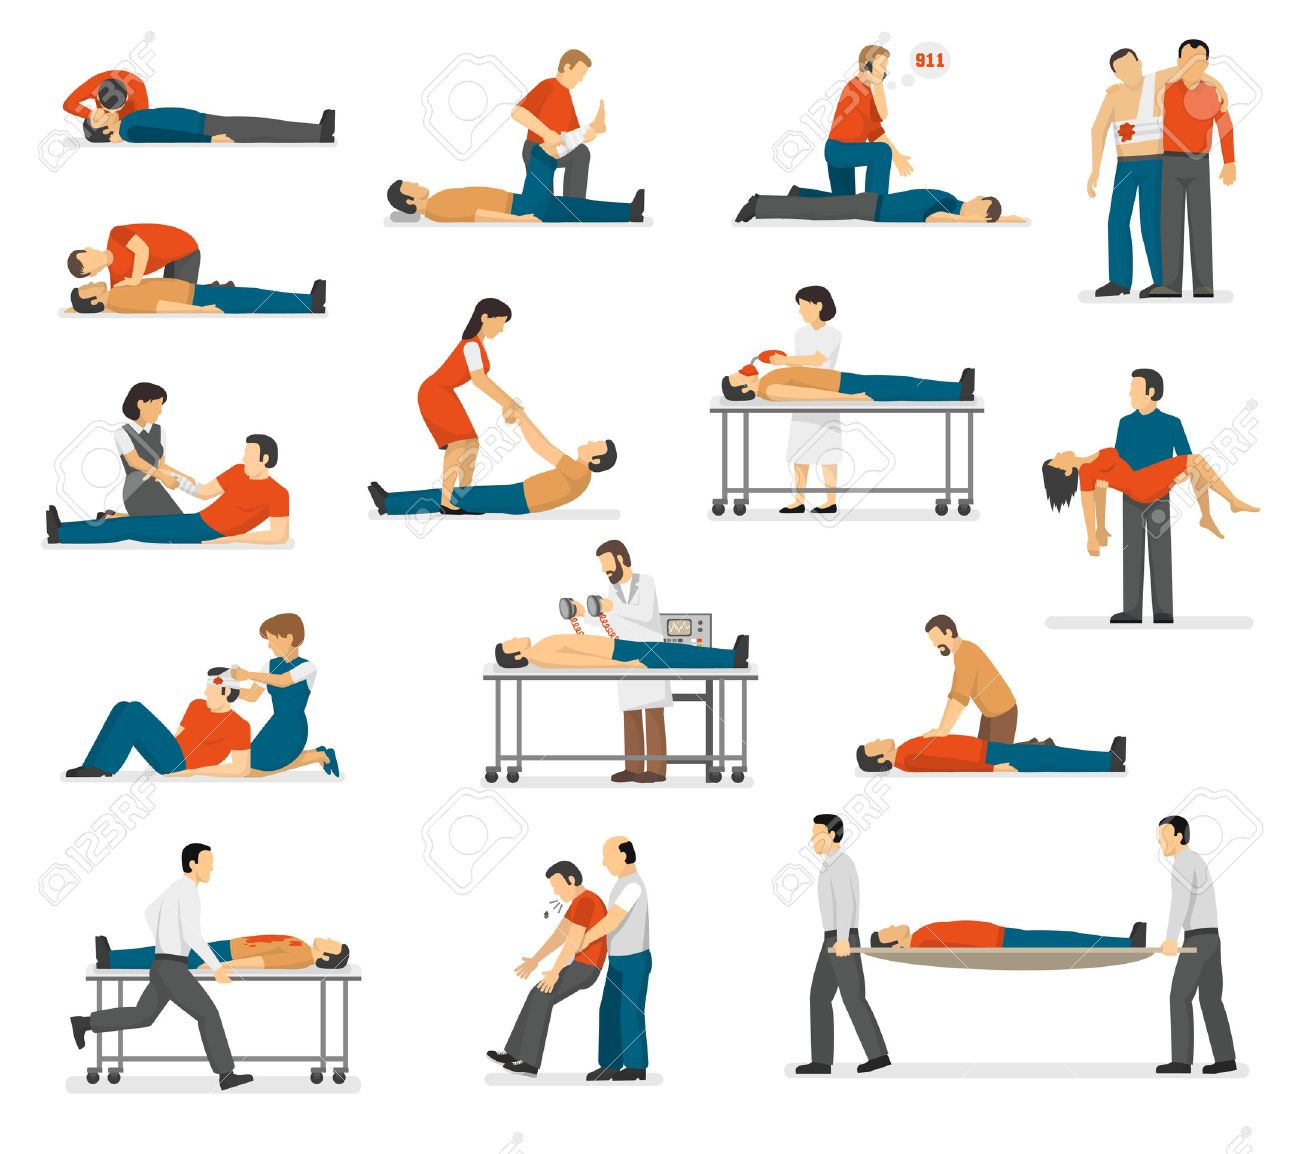 First aid emergency treatment and cpr technique in life threatening situations flat icons collection abstract isolated vector illustration - 61495357